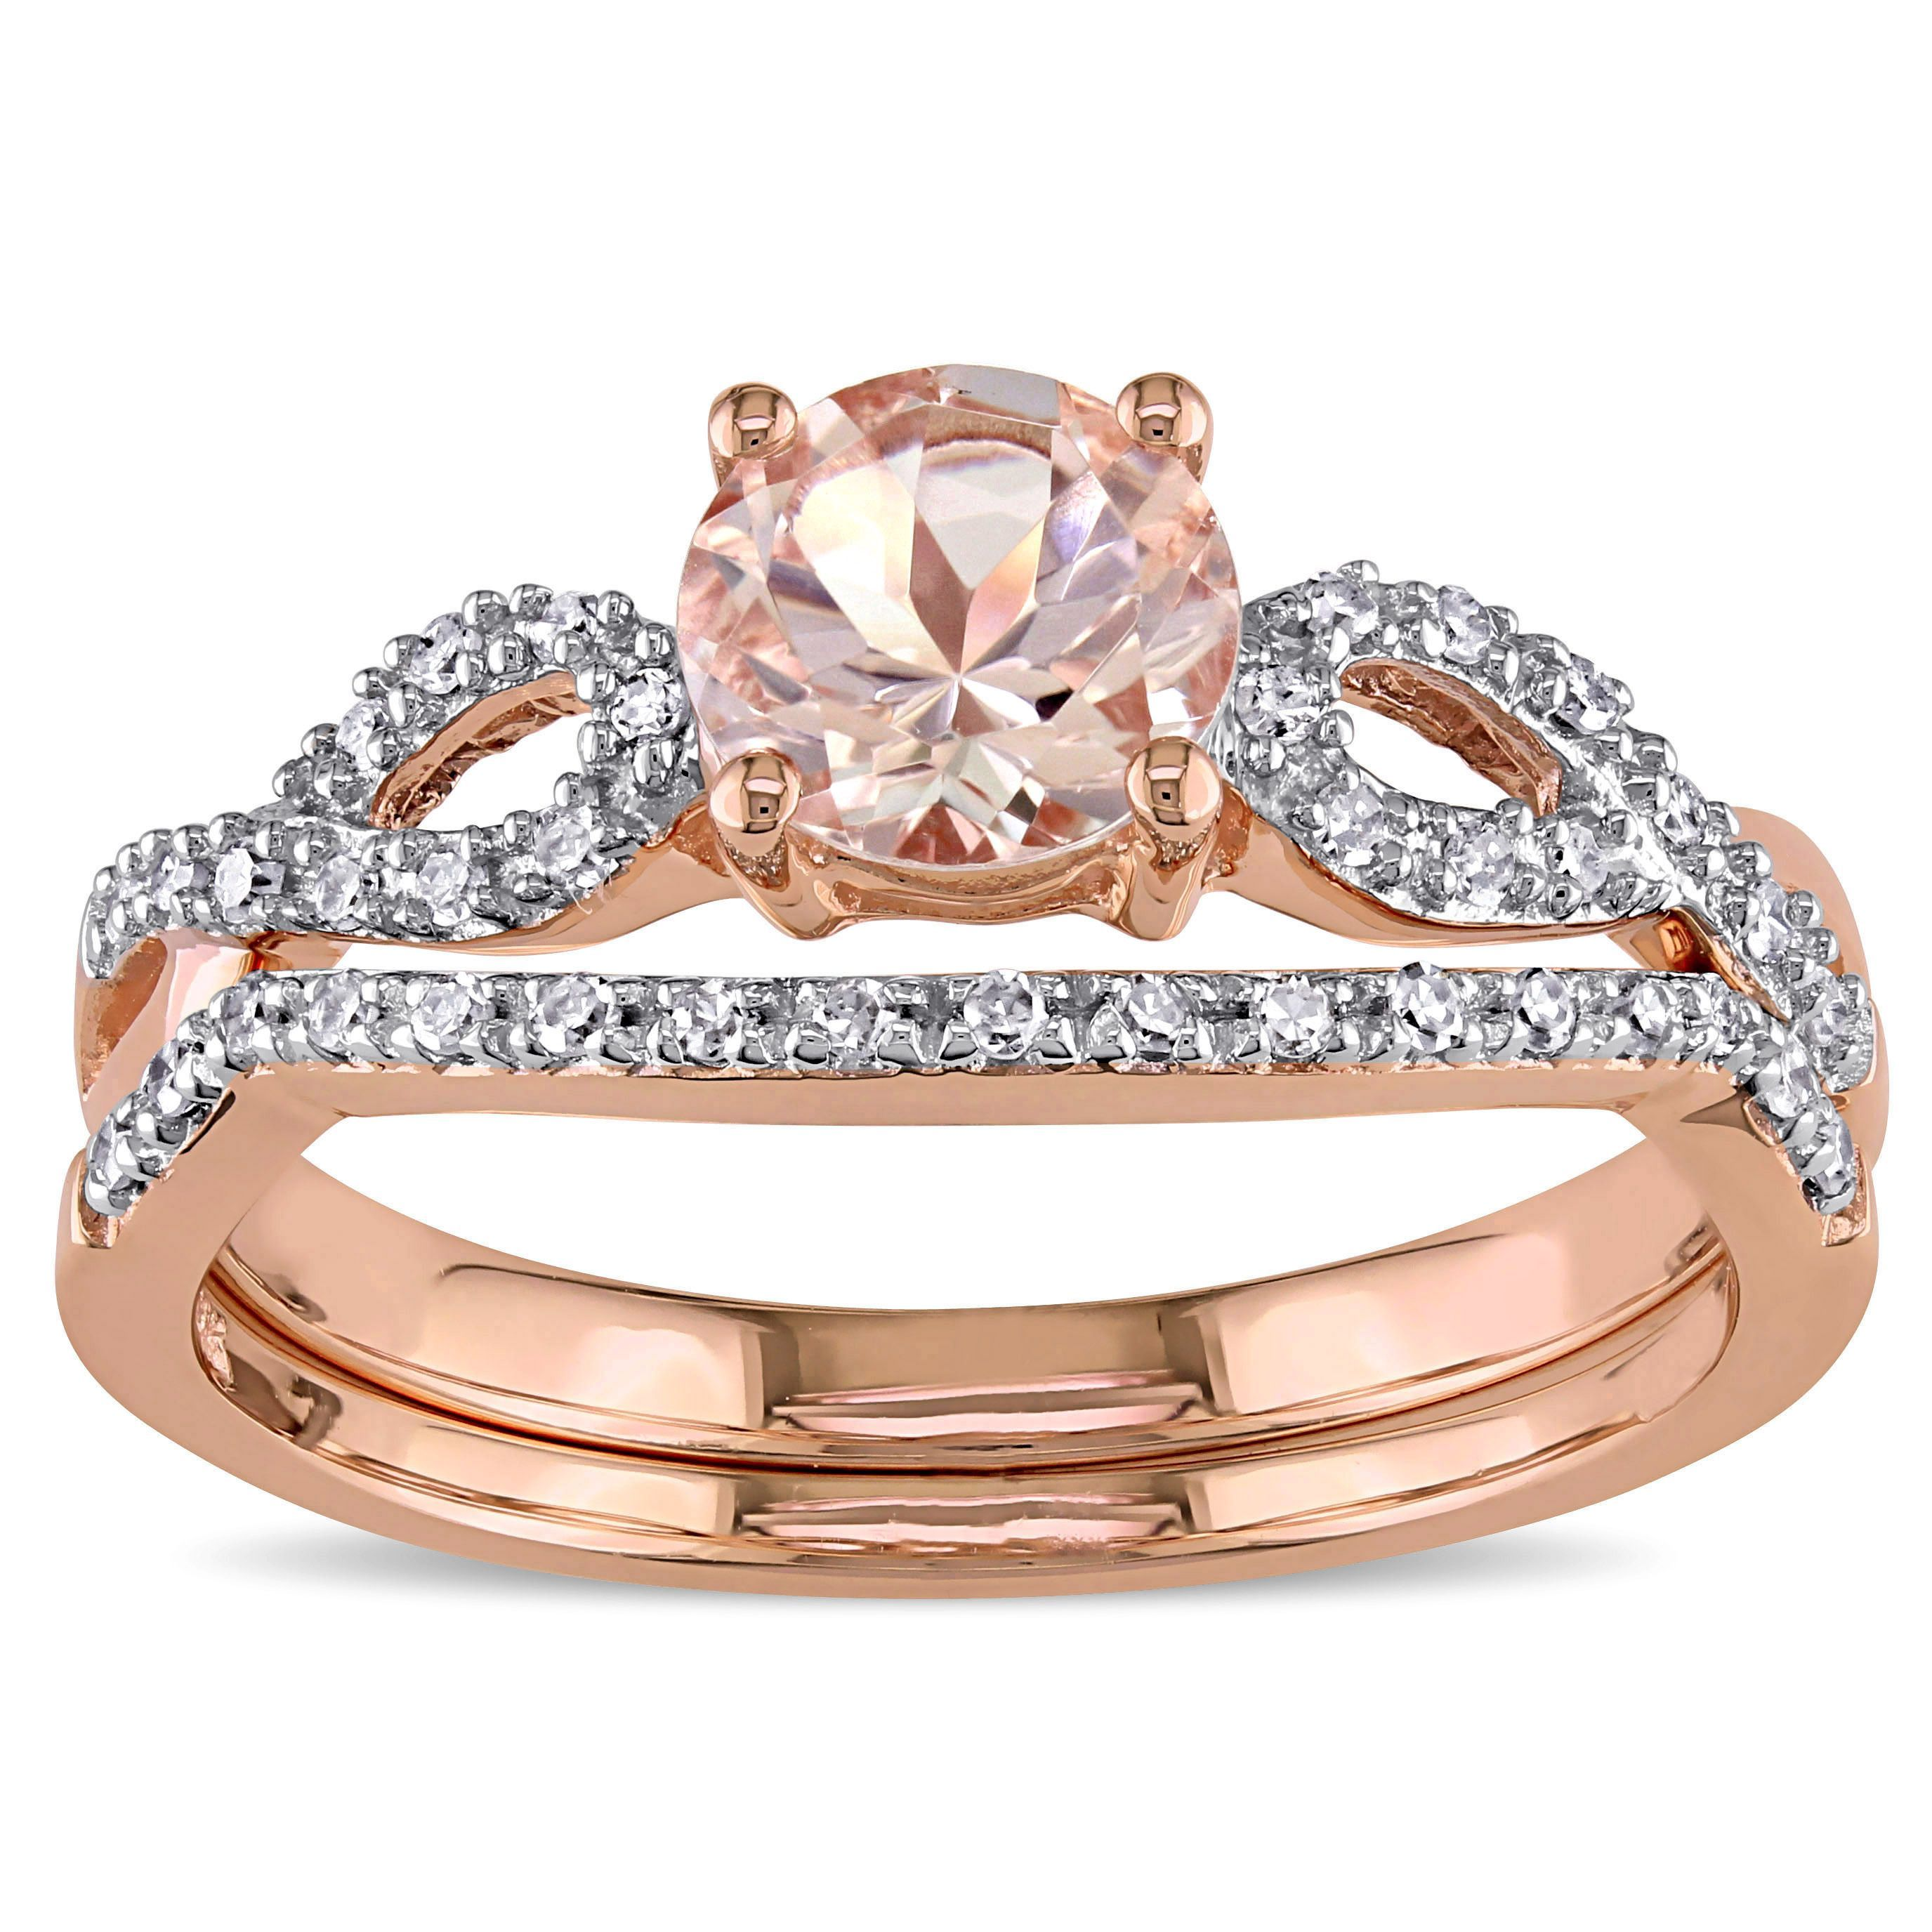 Miadora 10k Rose Gold Morganite and 16ct TDW Diamond Bridal